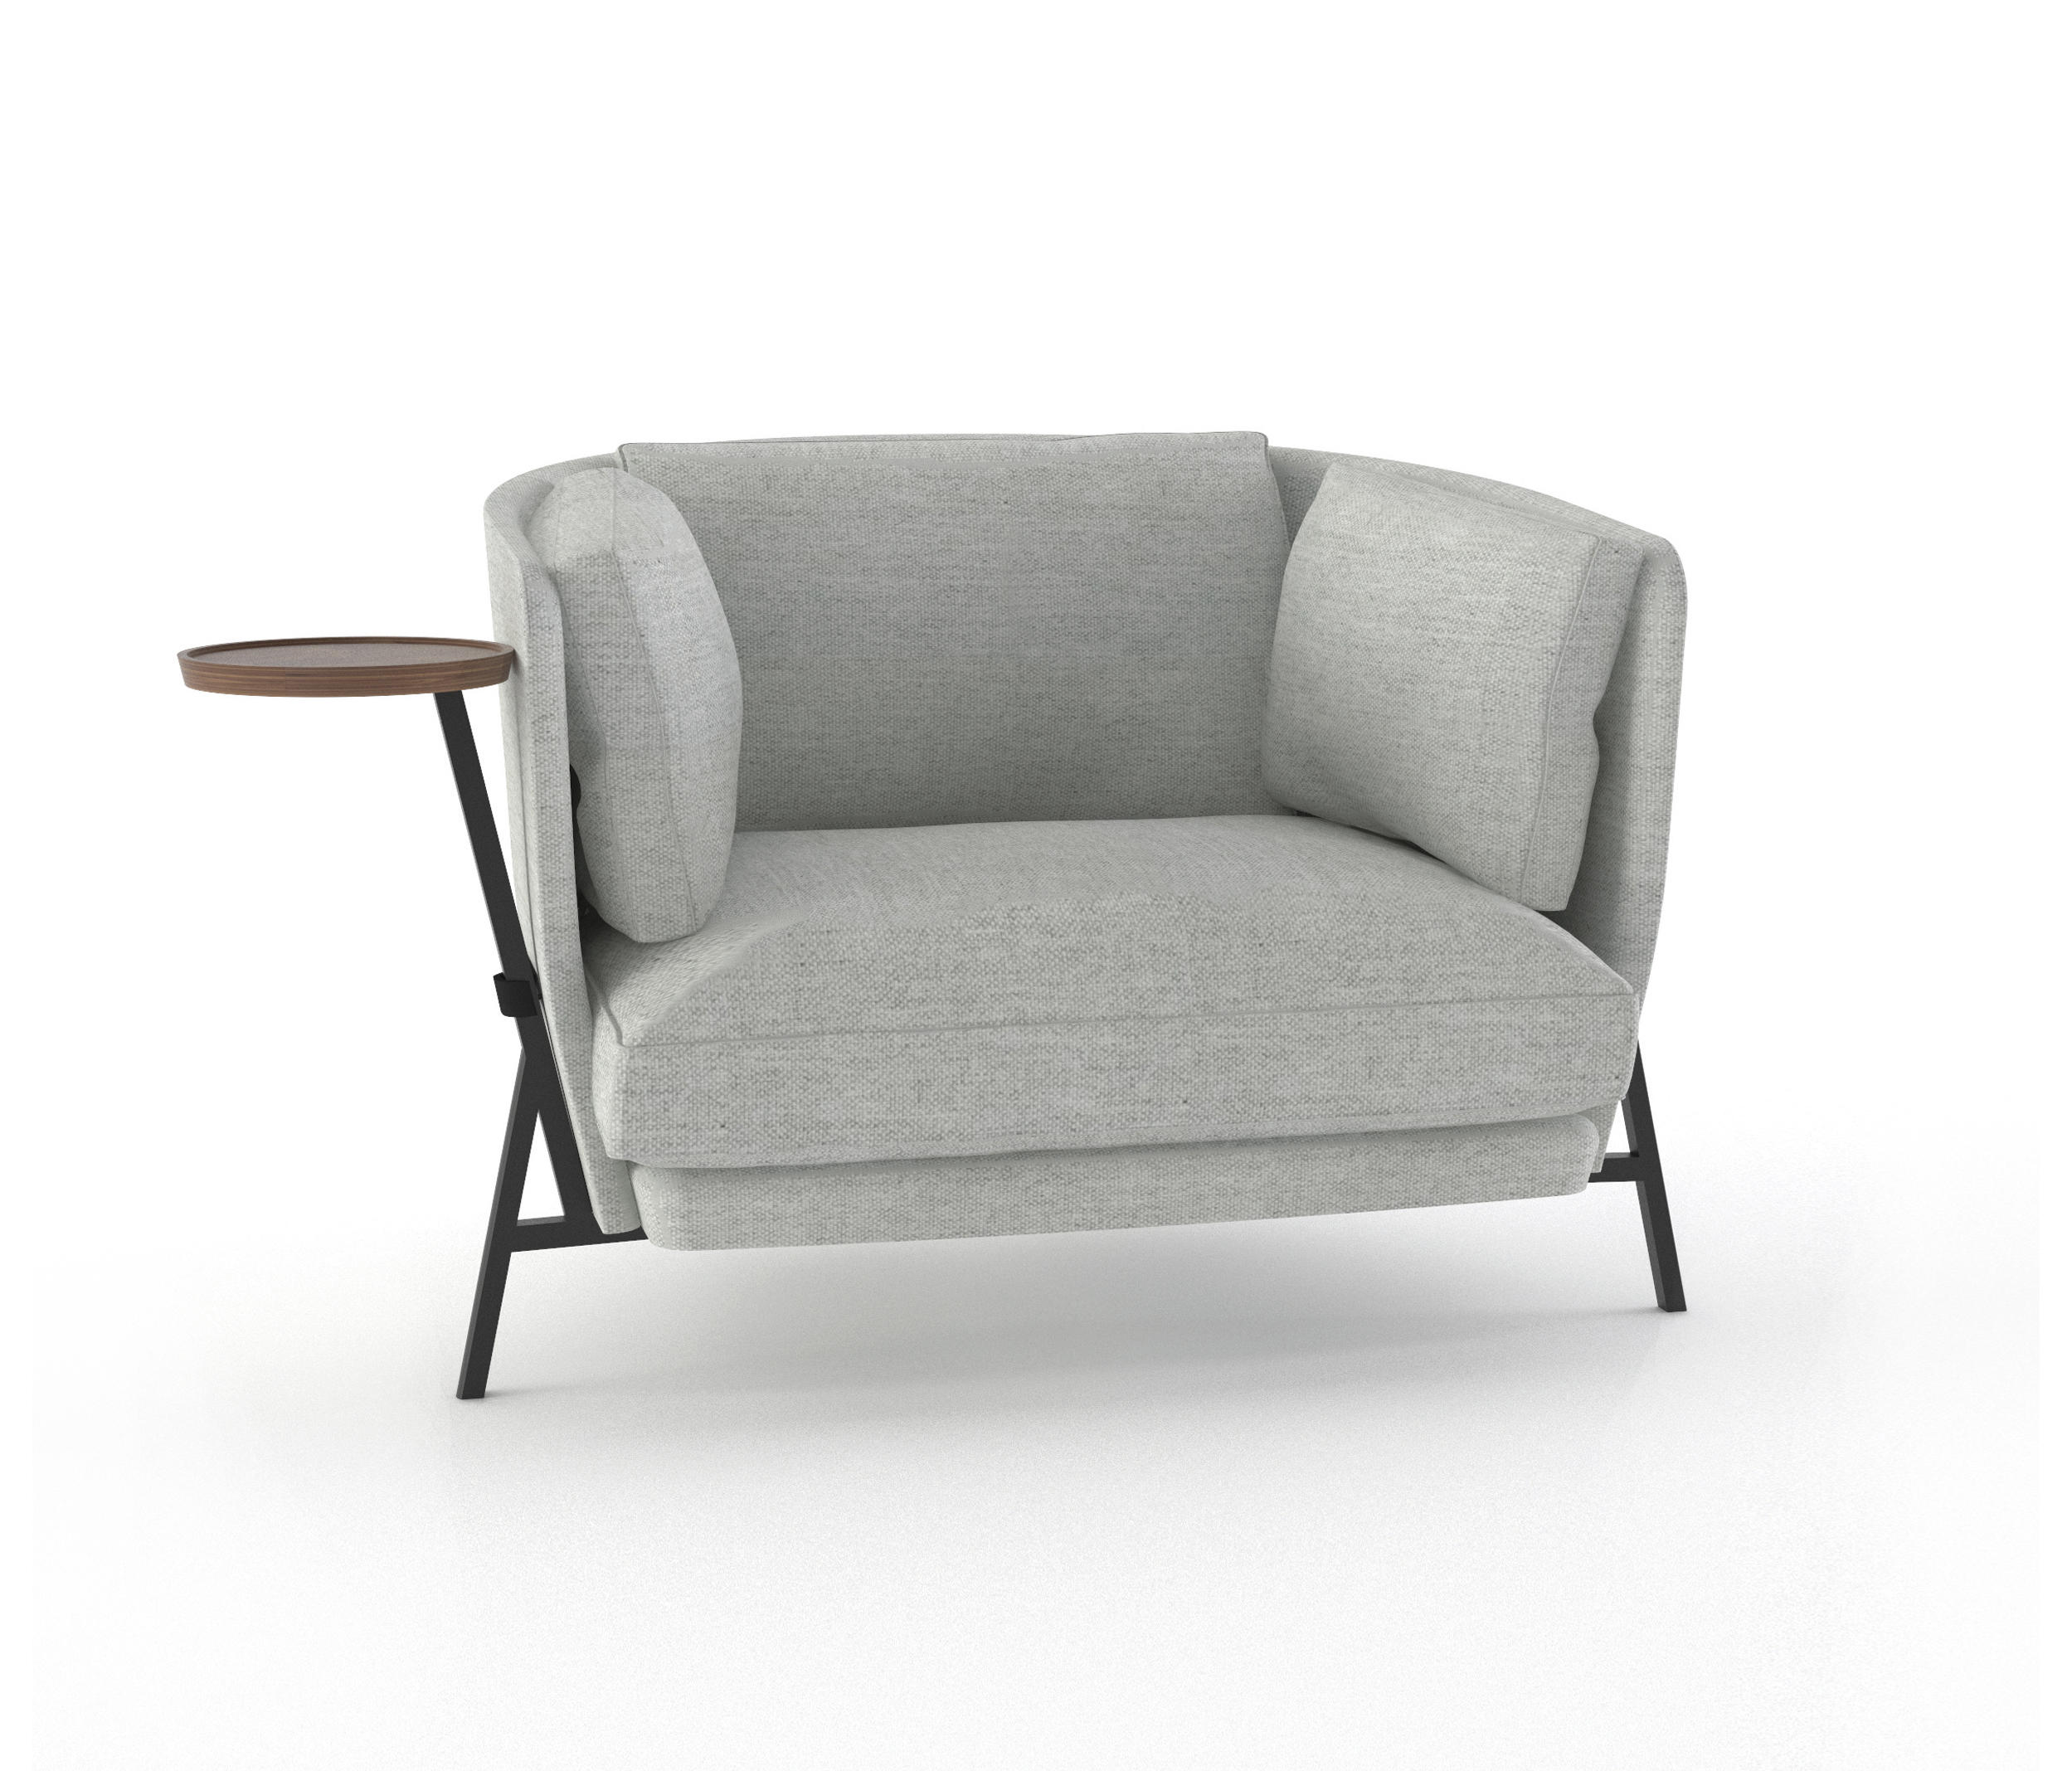 Arflex Sessel Cradle Sessel Loungesessel Von Arflex Architonic